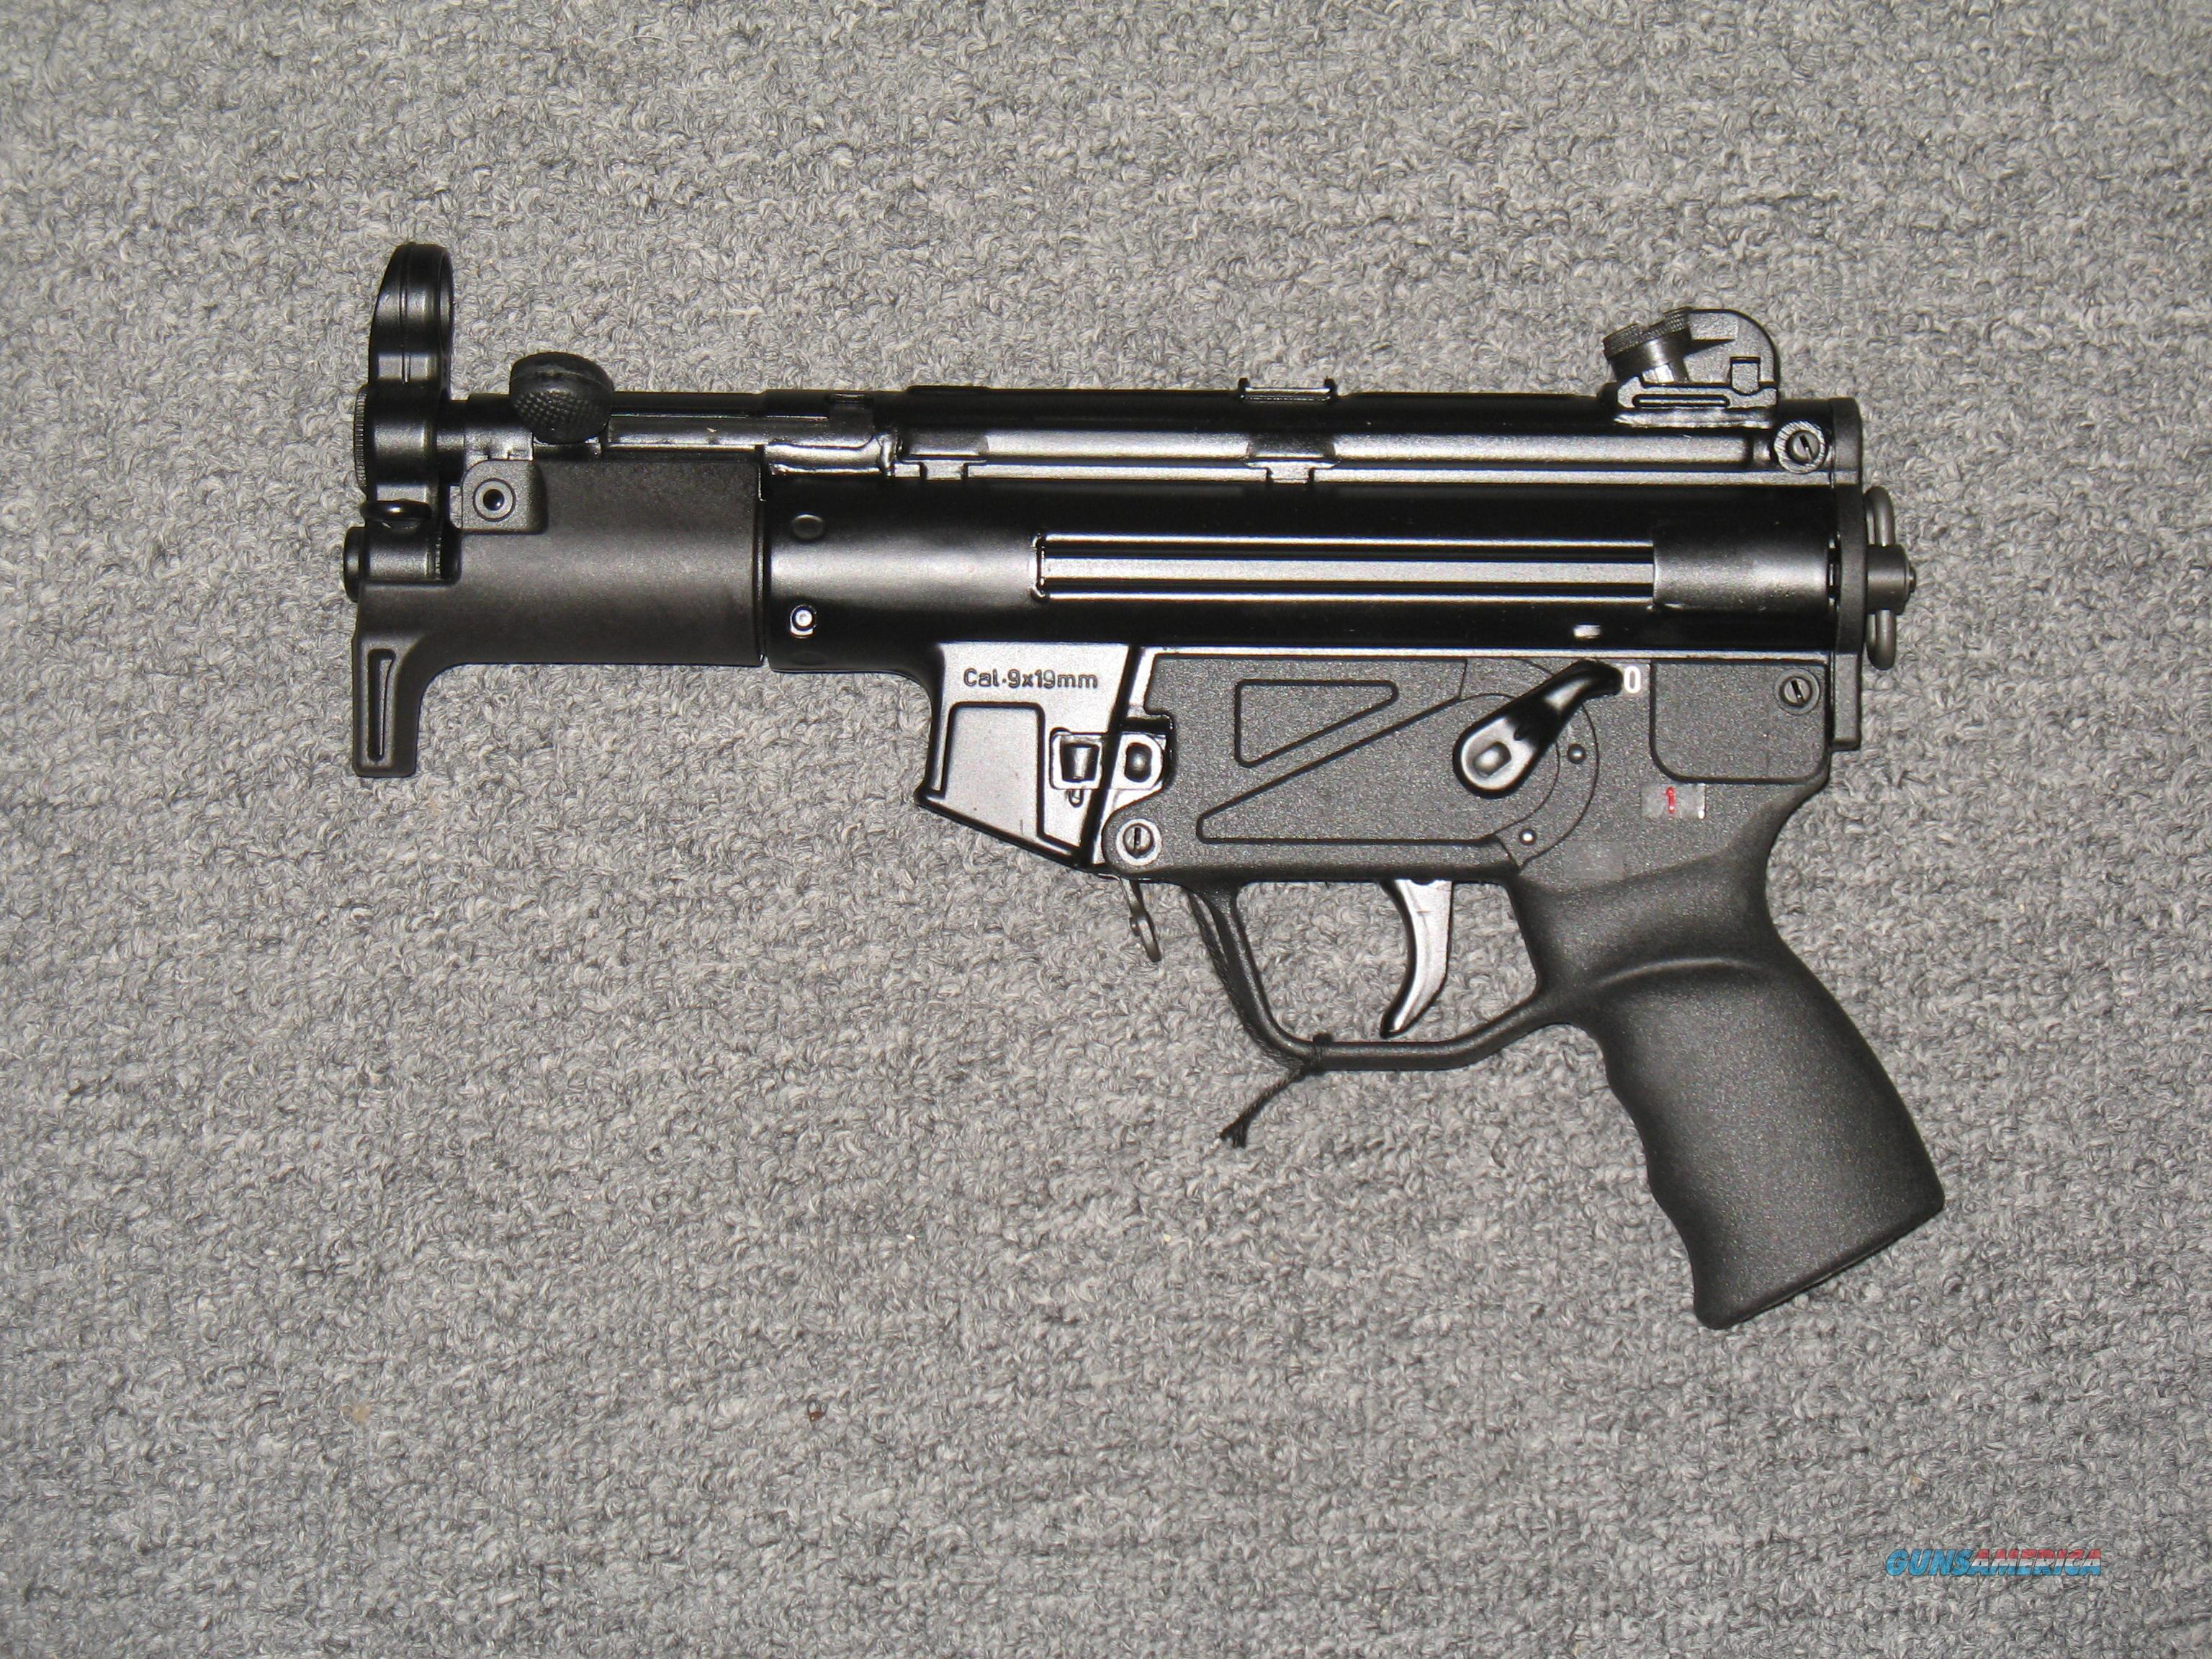 Zenith Firearms Mke Z 5k Hk Mp5k Clone 9mm For Sale